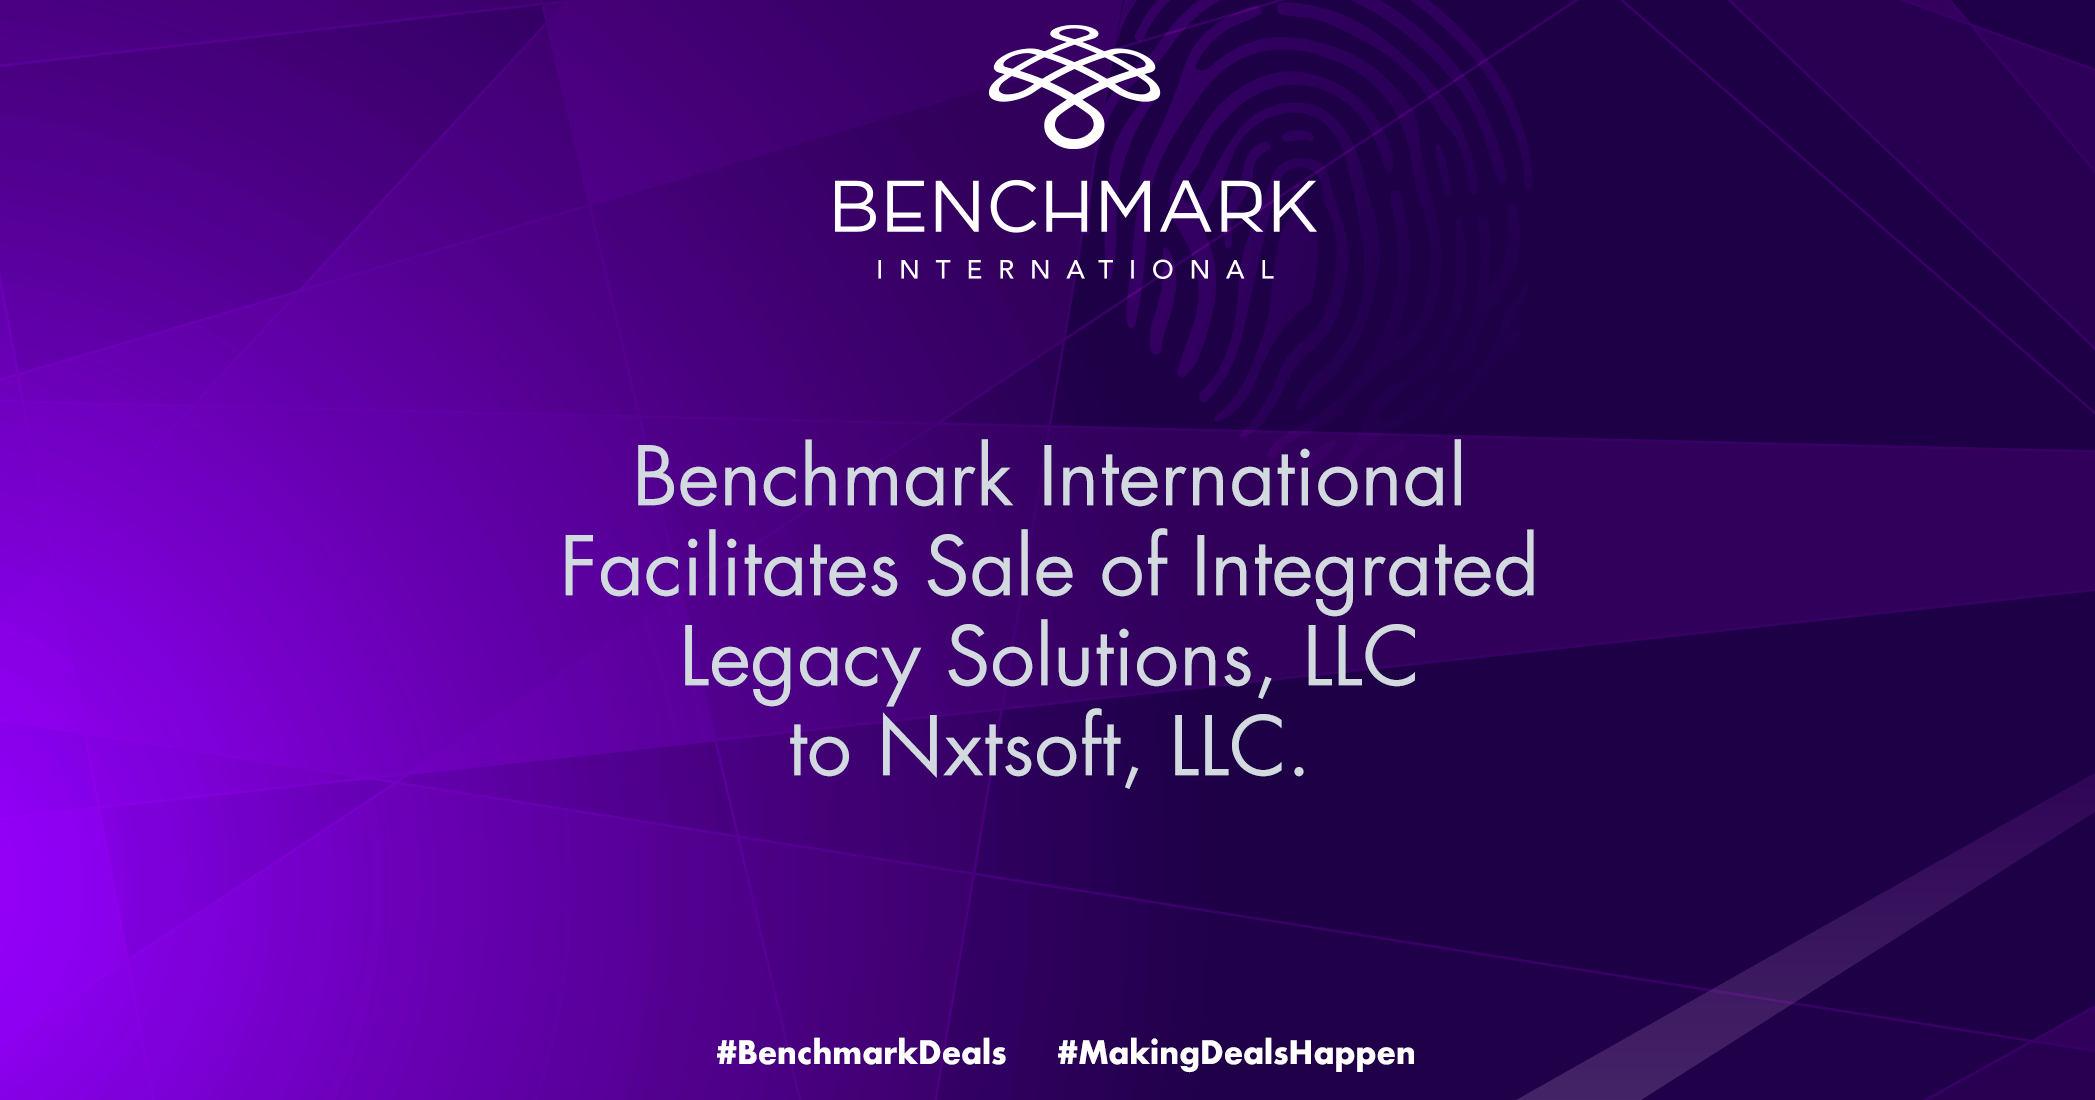 "Benchmark International, has facilitated the sale of Integrated Legacy Solutions, LLC (""ILS"") to NXTsoft, LLC (""NXTsoft"")."